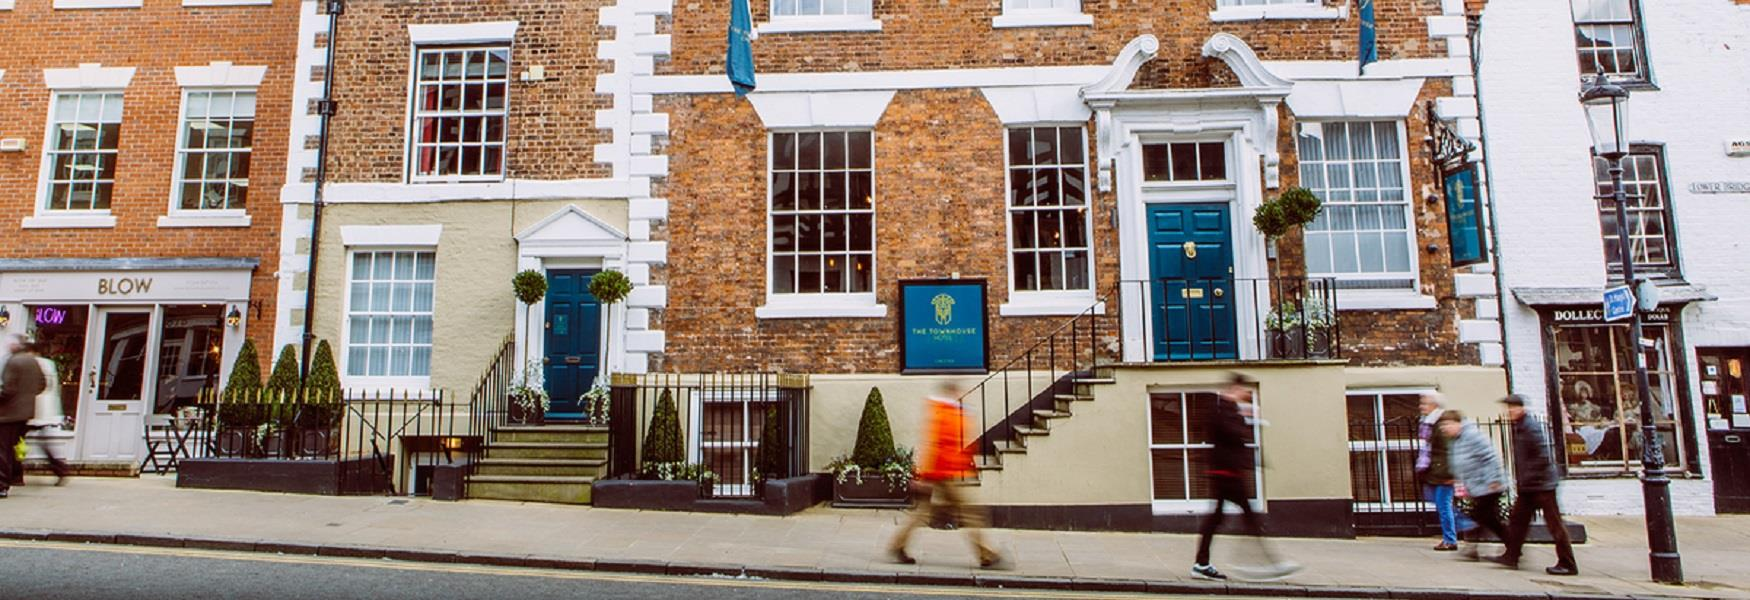 The Townhouse Hotel